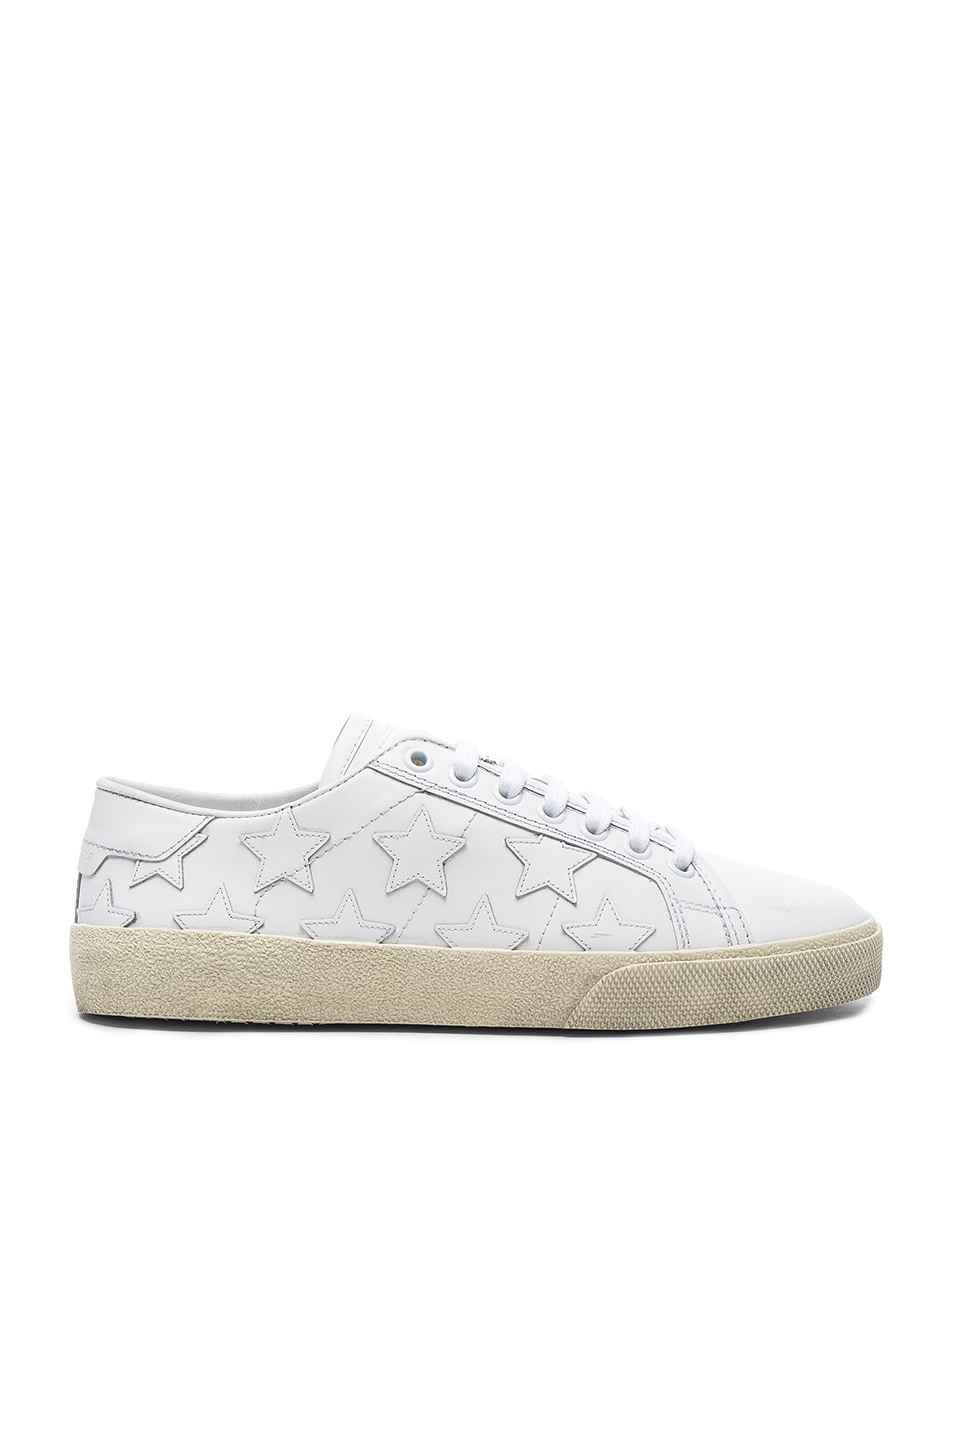 Image 1 of Saint Laurent Leather Court Classic Star Sneakers in Off White